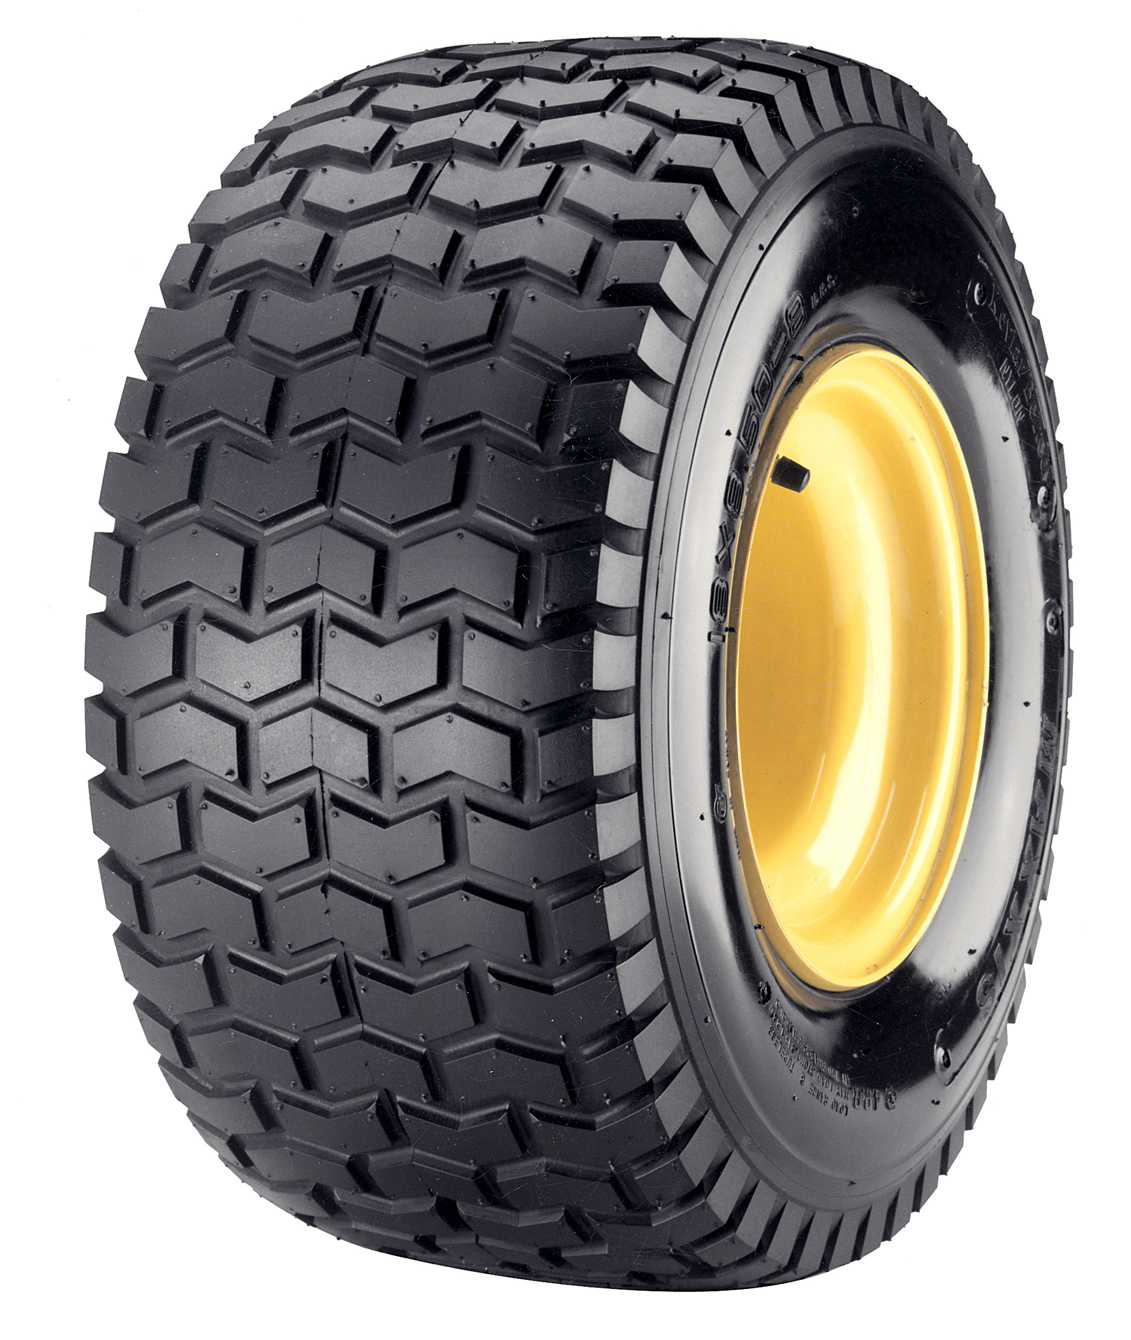 Maxxis C165S Kevlar Puncture Resistant Tyres | Tyre Choice